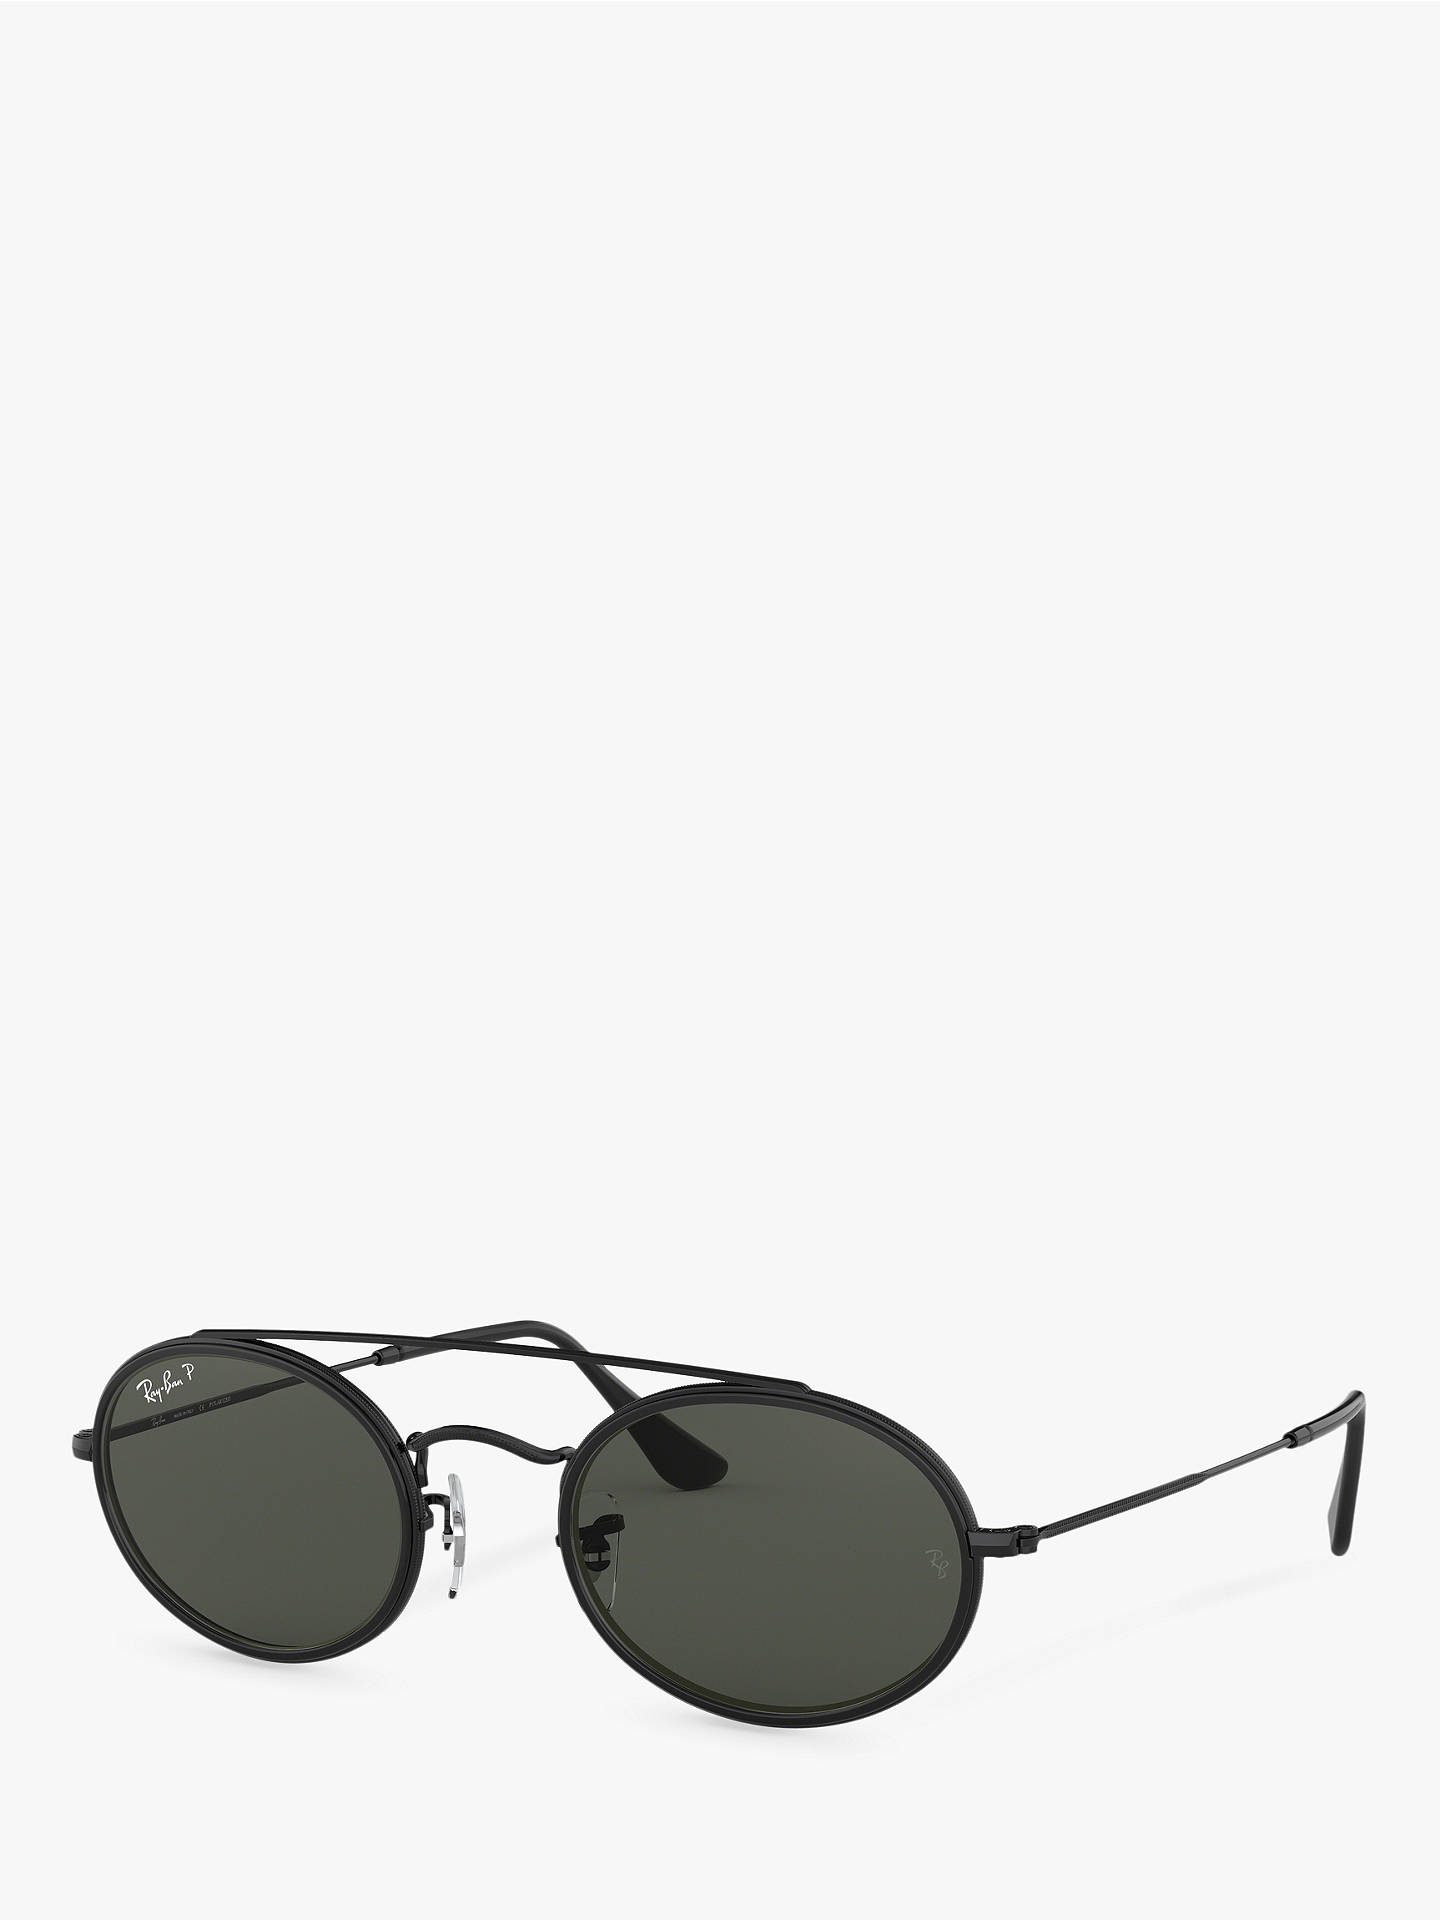 704cca39cd BuyRay-Ban RB3847N Unisex Polarised Oval Sunglasses